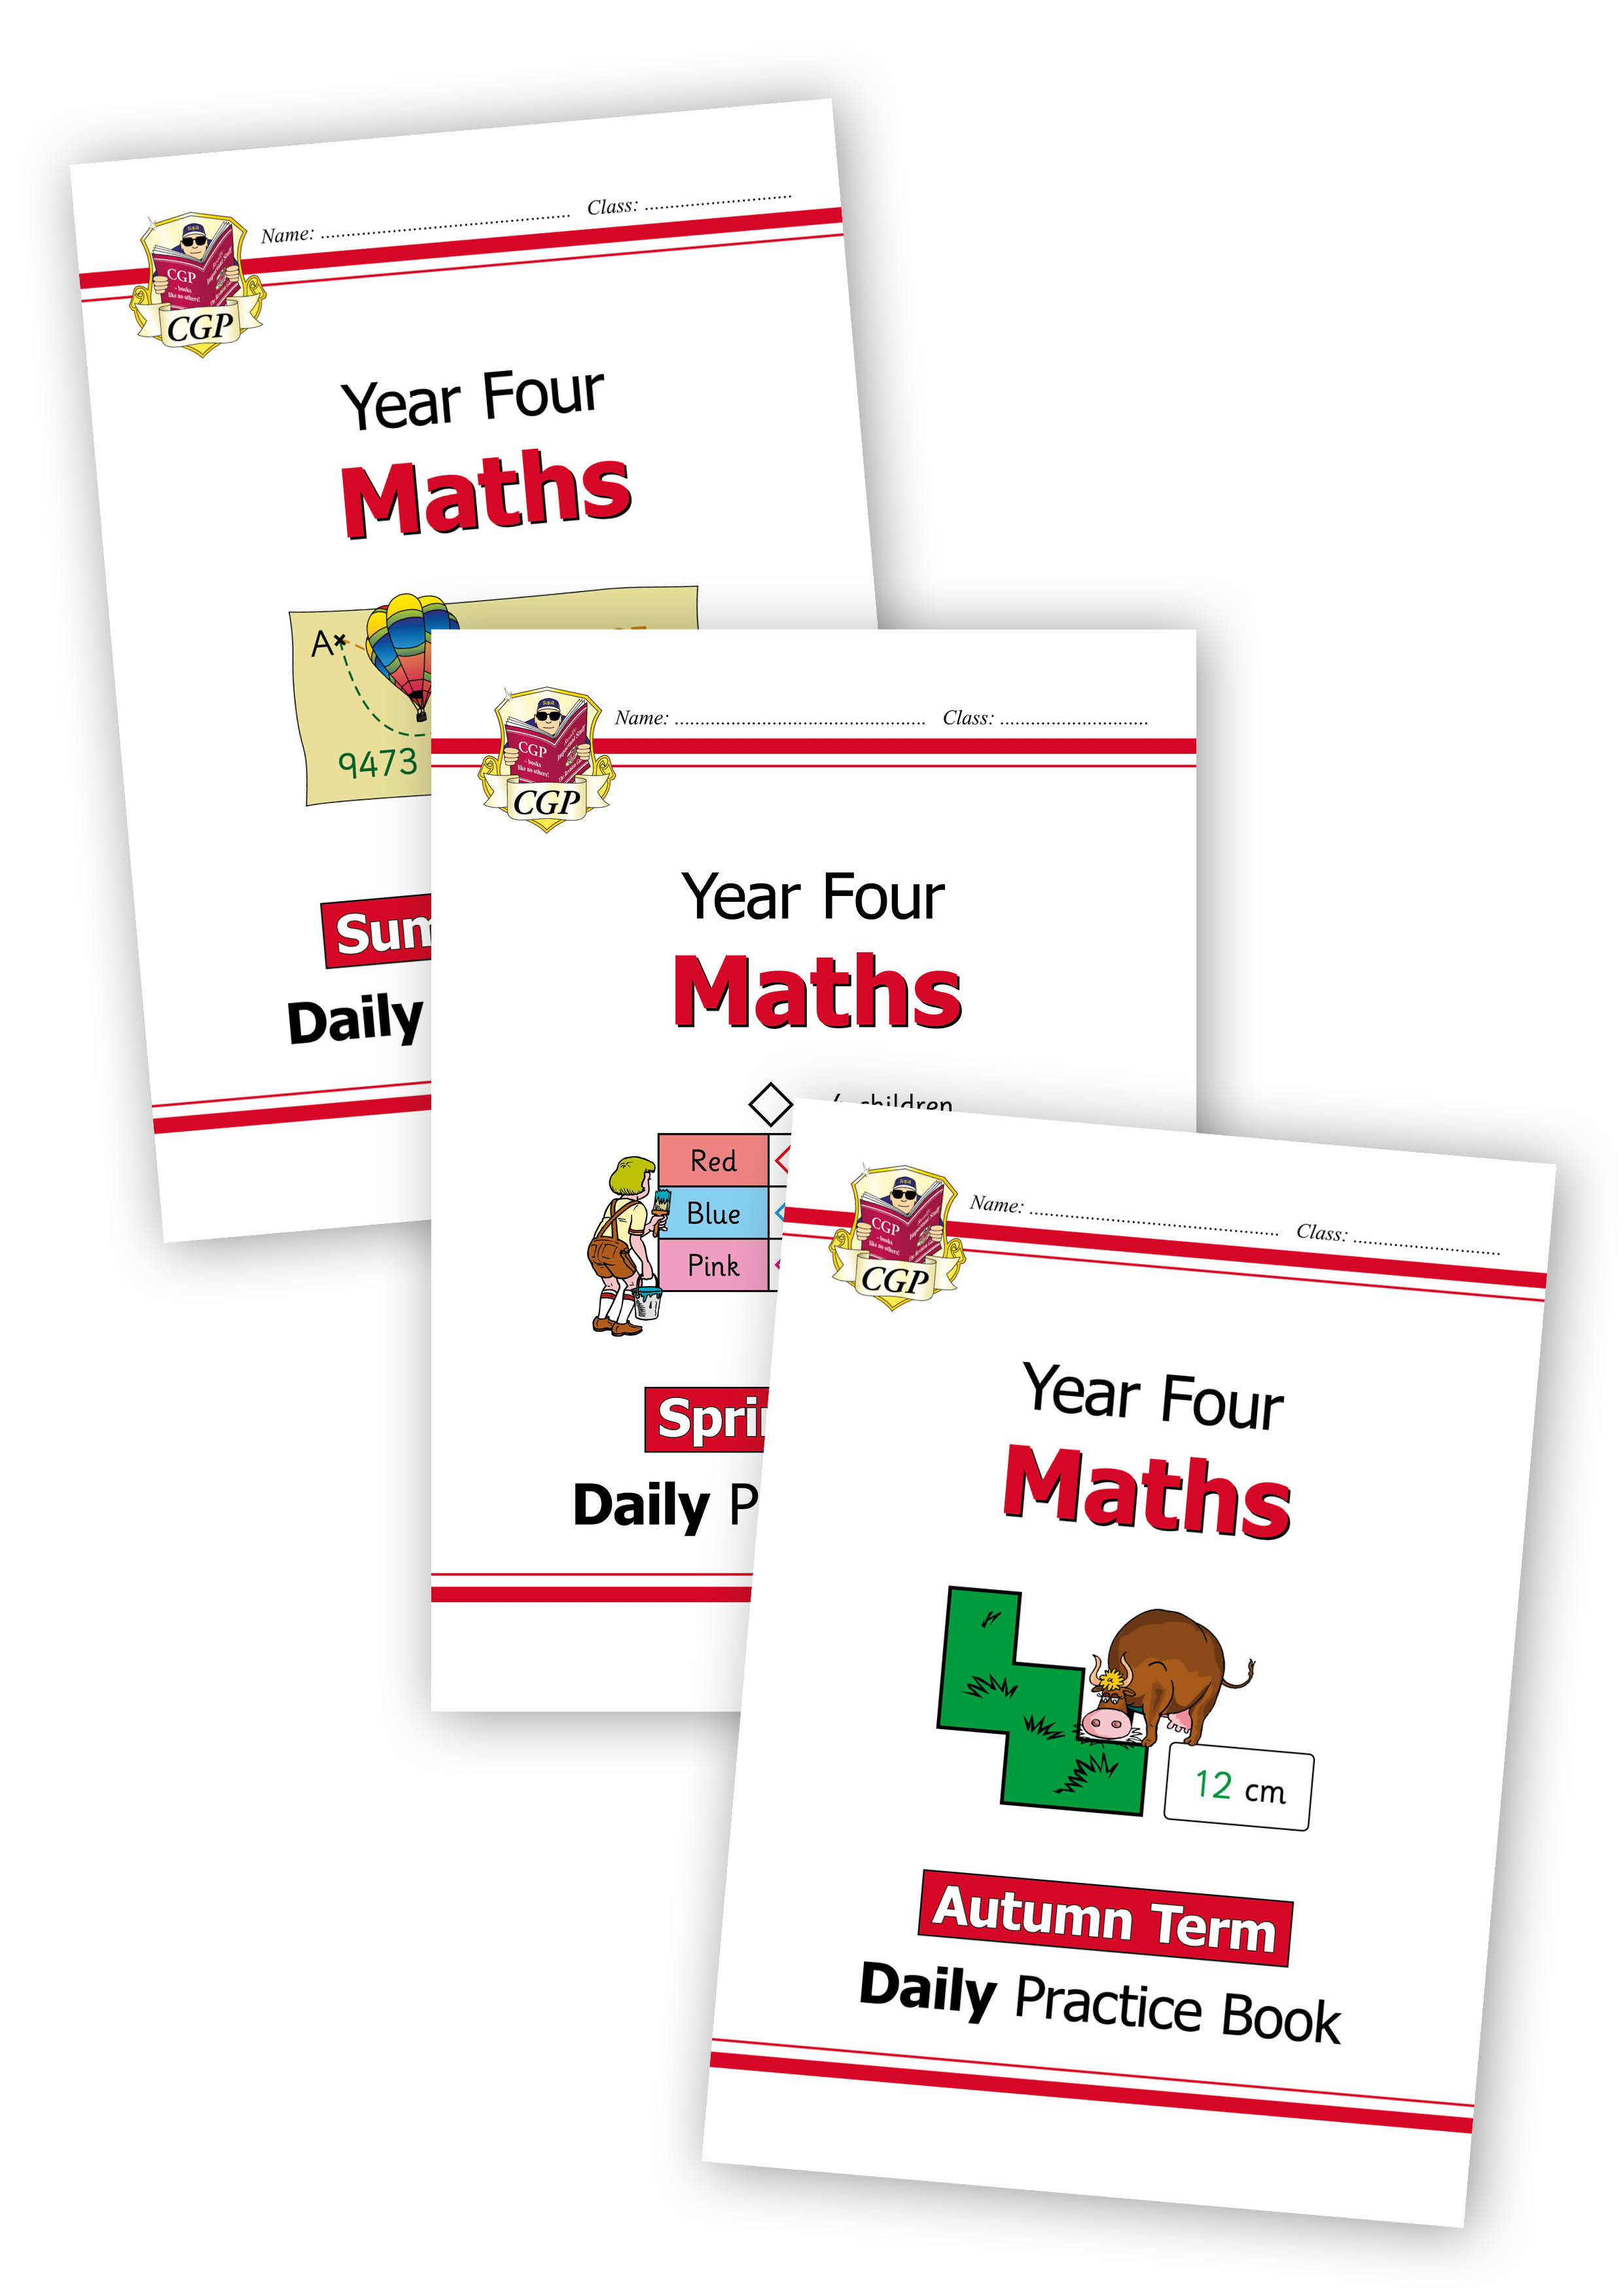 M4WB21 - New KS2 Maths Daily Practice Book Bundle: Year 4 - Autumn Term, Spring Term & Summer Term